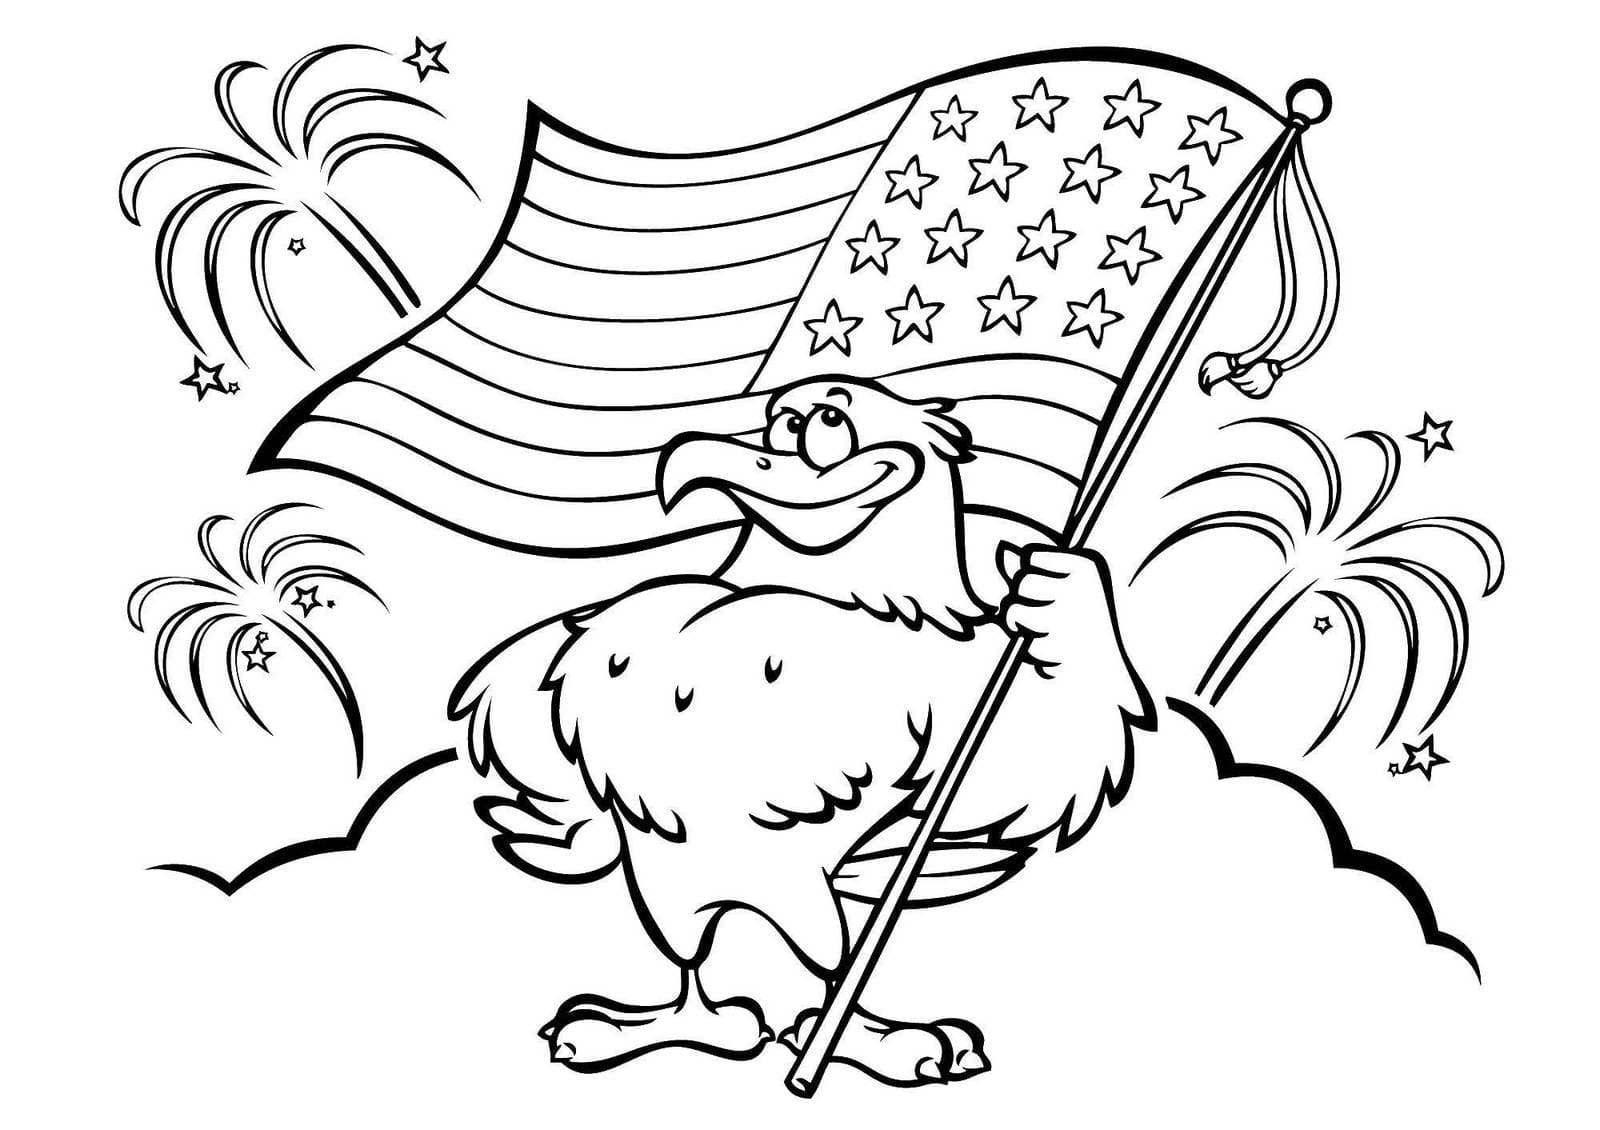 coloring flags american flag coloring page for the love of the country flags coloring 1 1